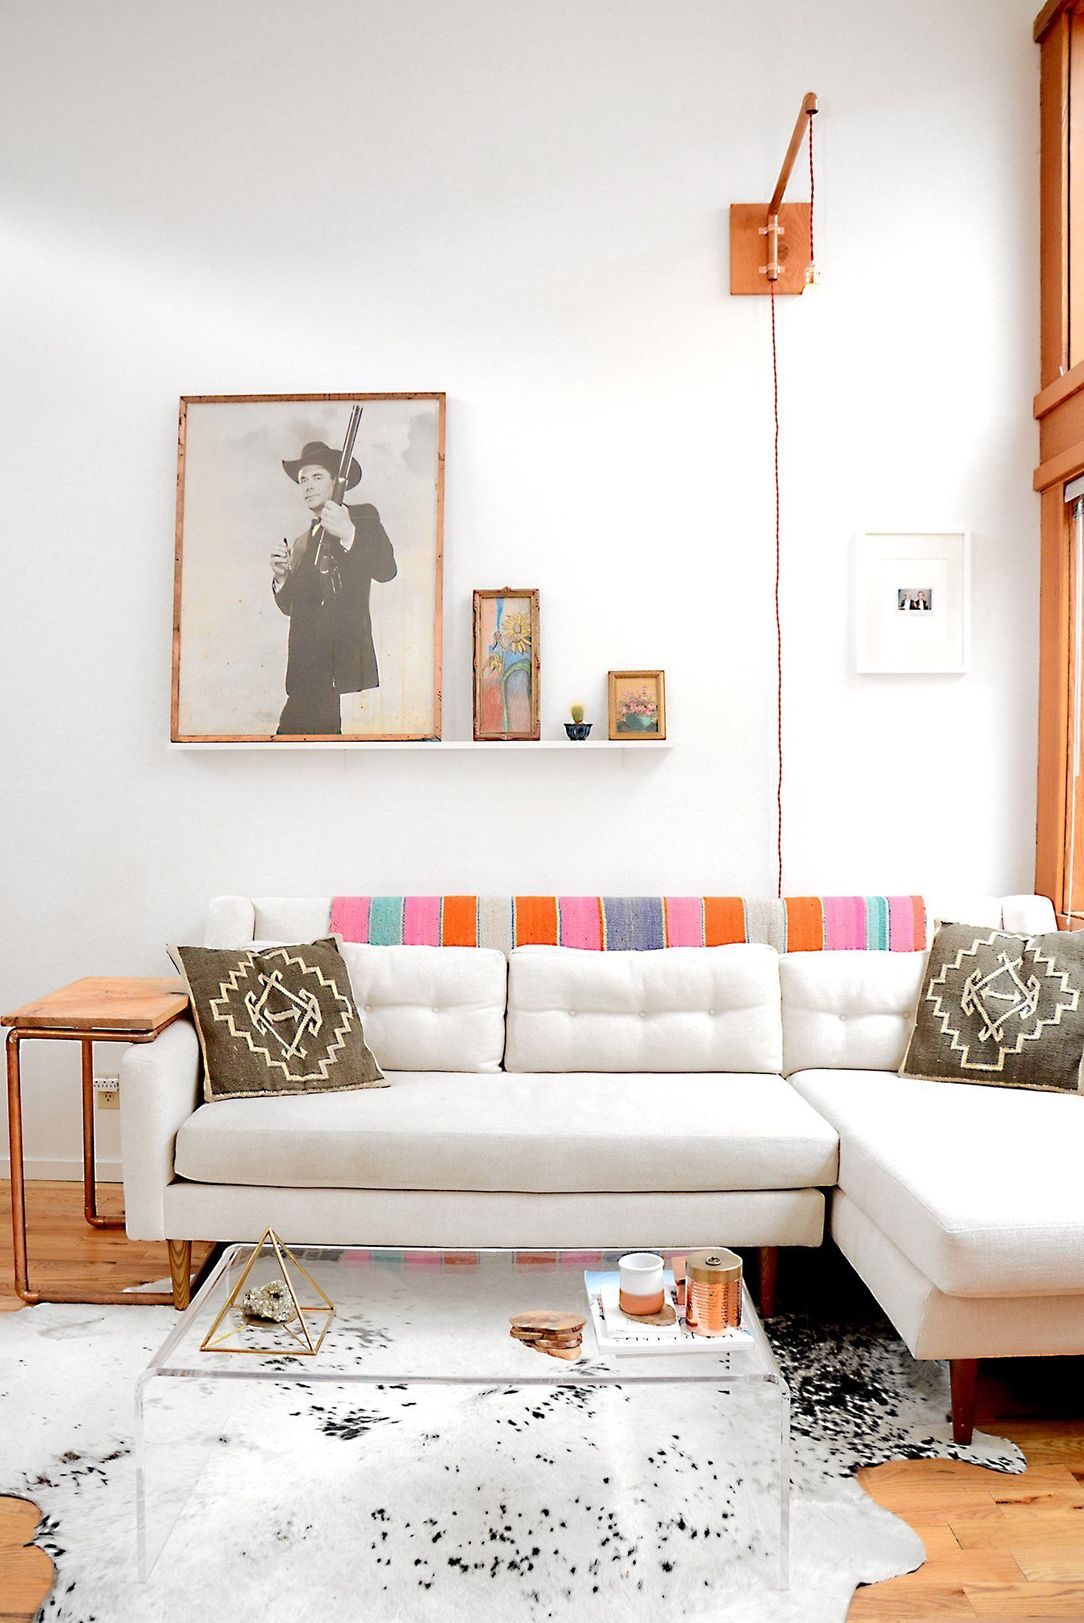 The Most Stylish Budget Furniture For Your First Apartment With Images Budget Furniture Boho Living Room Apartment Decor